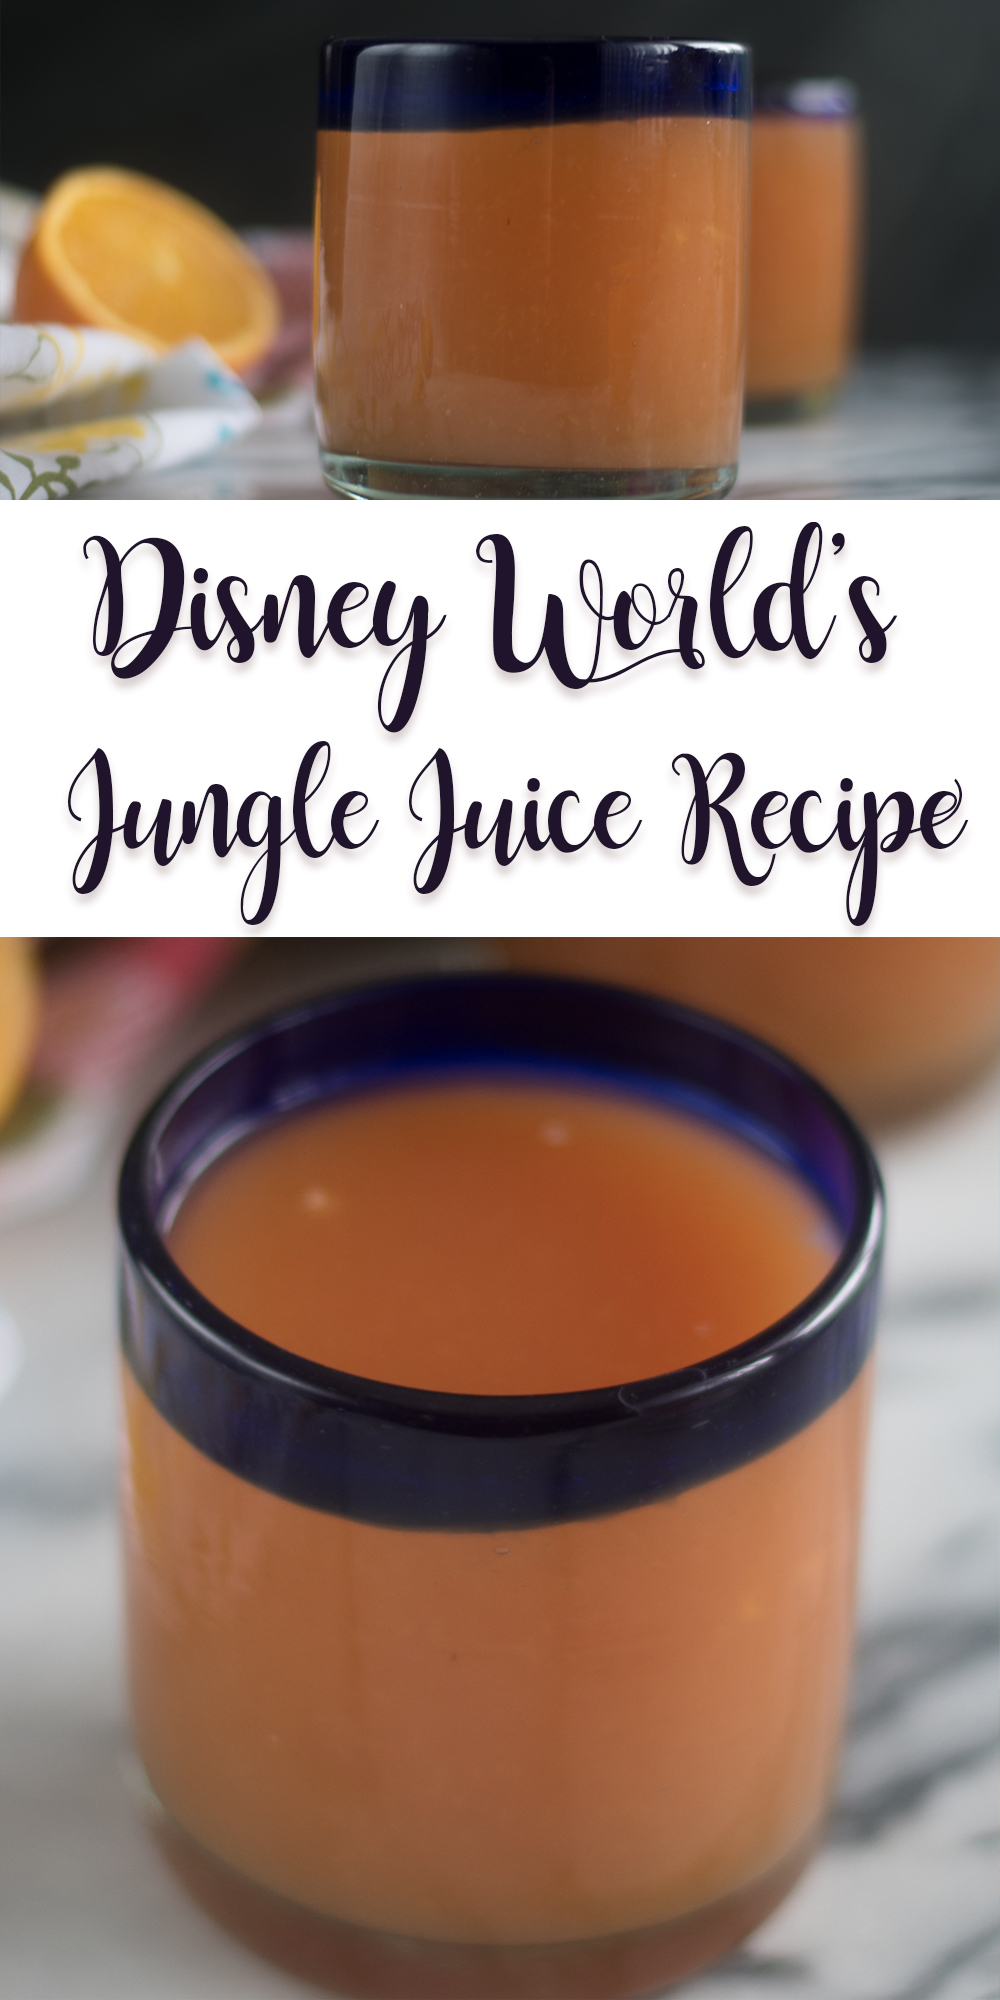 All throughout Disney World's Animal Kingdom Lodge, you will find a delicious fruit juice known as Jungle Juice. It's also known as POG Juice. Bring a little of the Disney magic into your kitchen by recreating Disney's Jungle Juice! #Recipe #Disney #Disneyworld #drink #juice #beverage #fruit #orange #breakfast #brunch #recipe #vegan